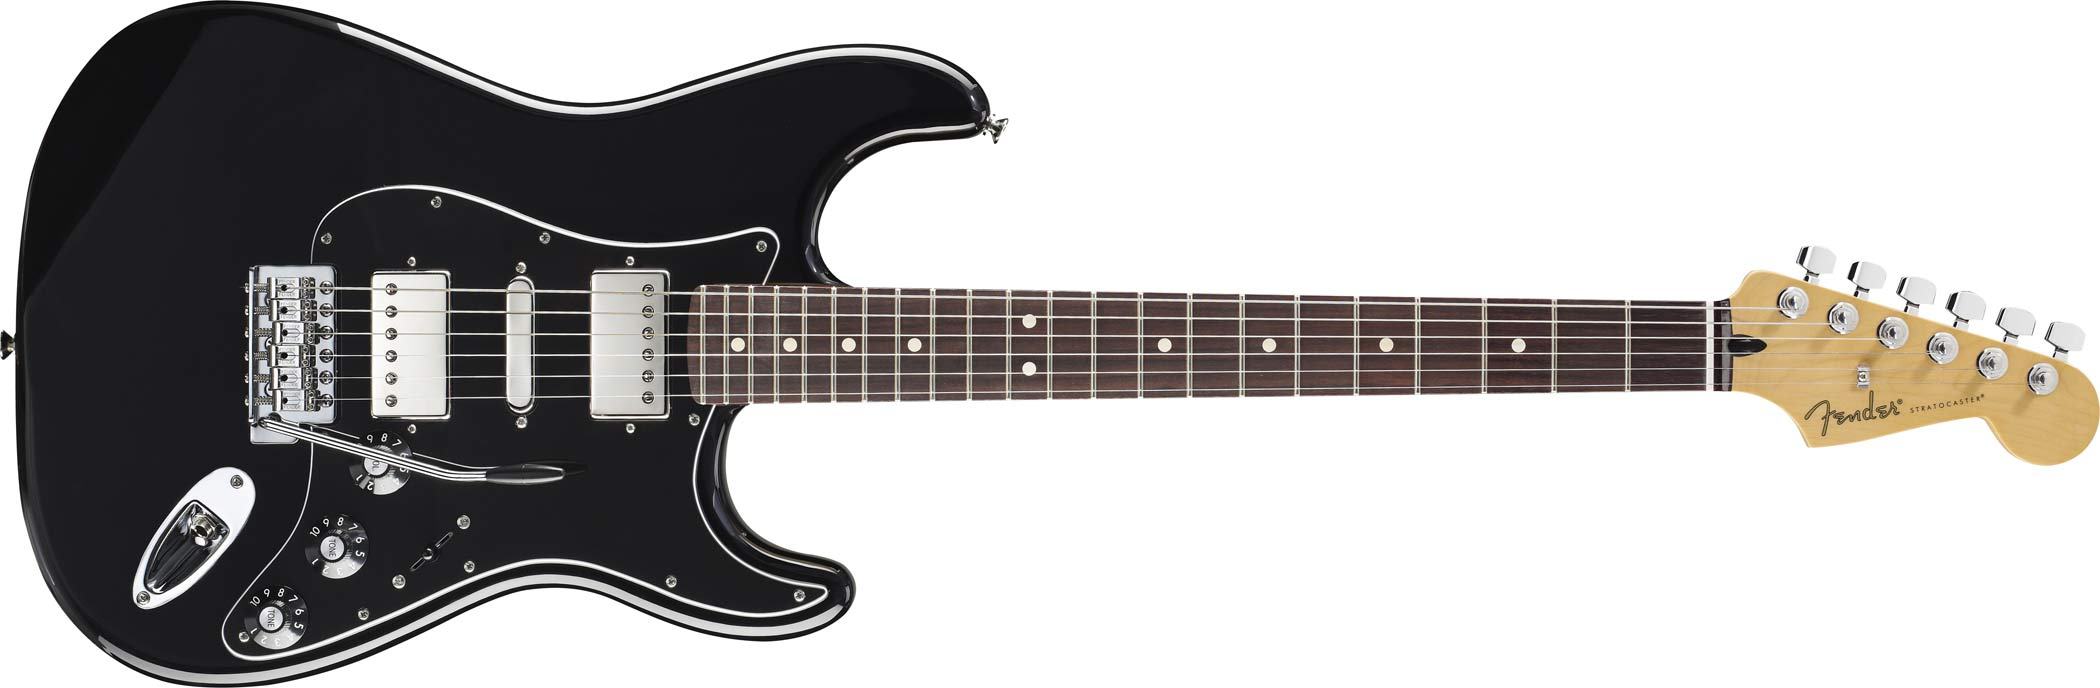 BLACKTOP STRATOCASTER HSH - Fender Blacktop Stratocaster HSH ...